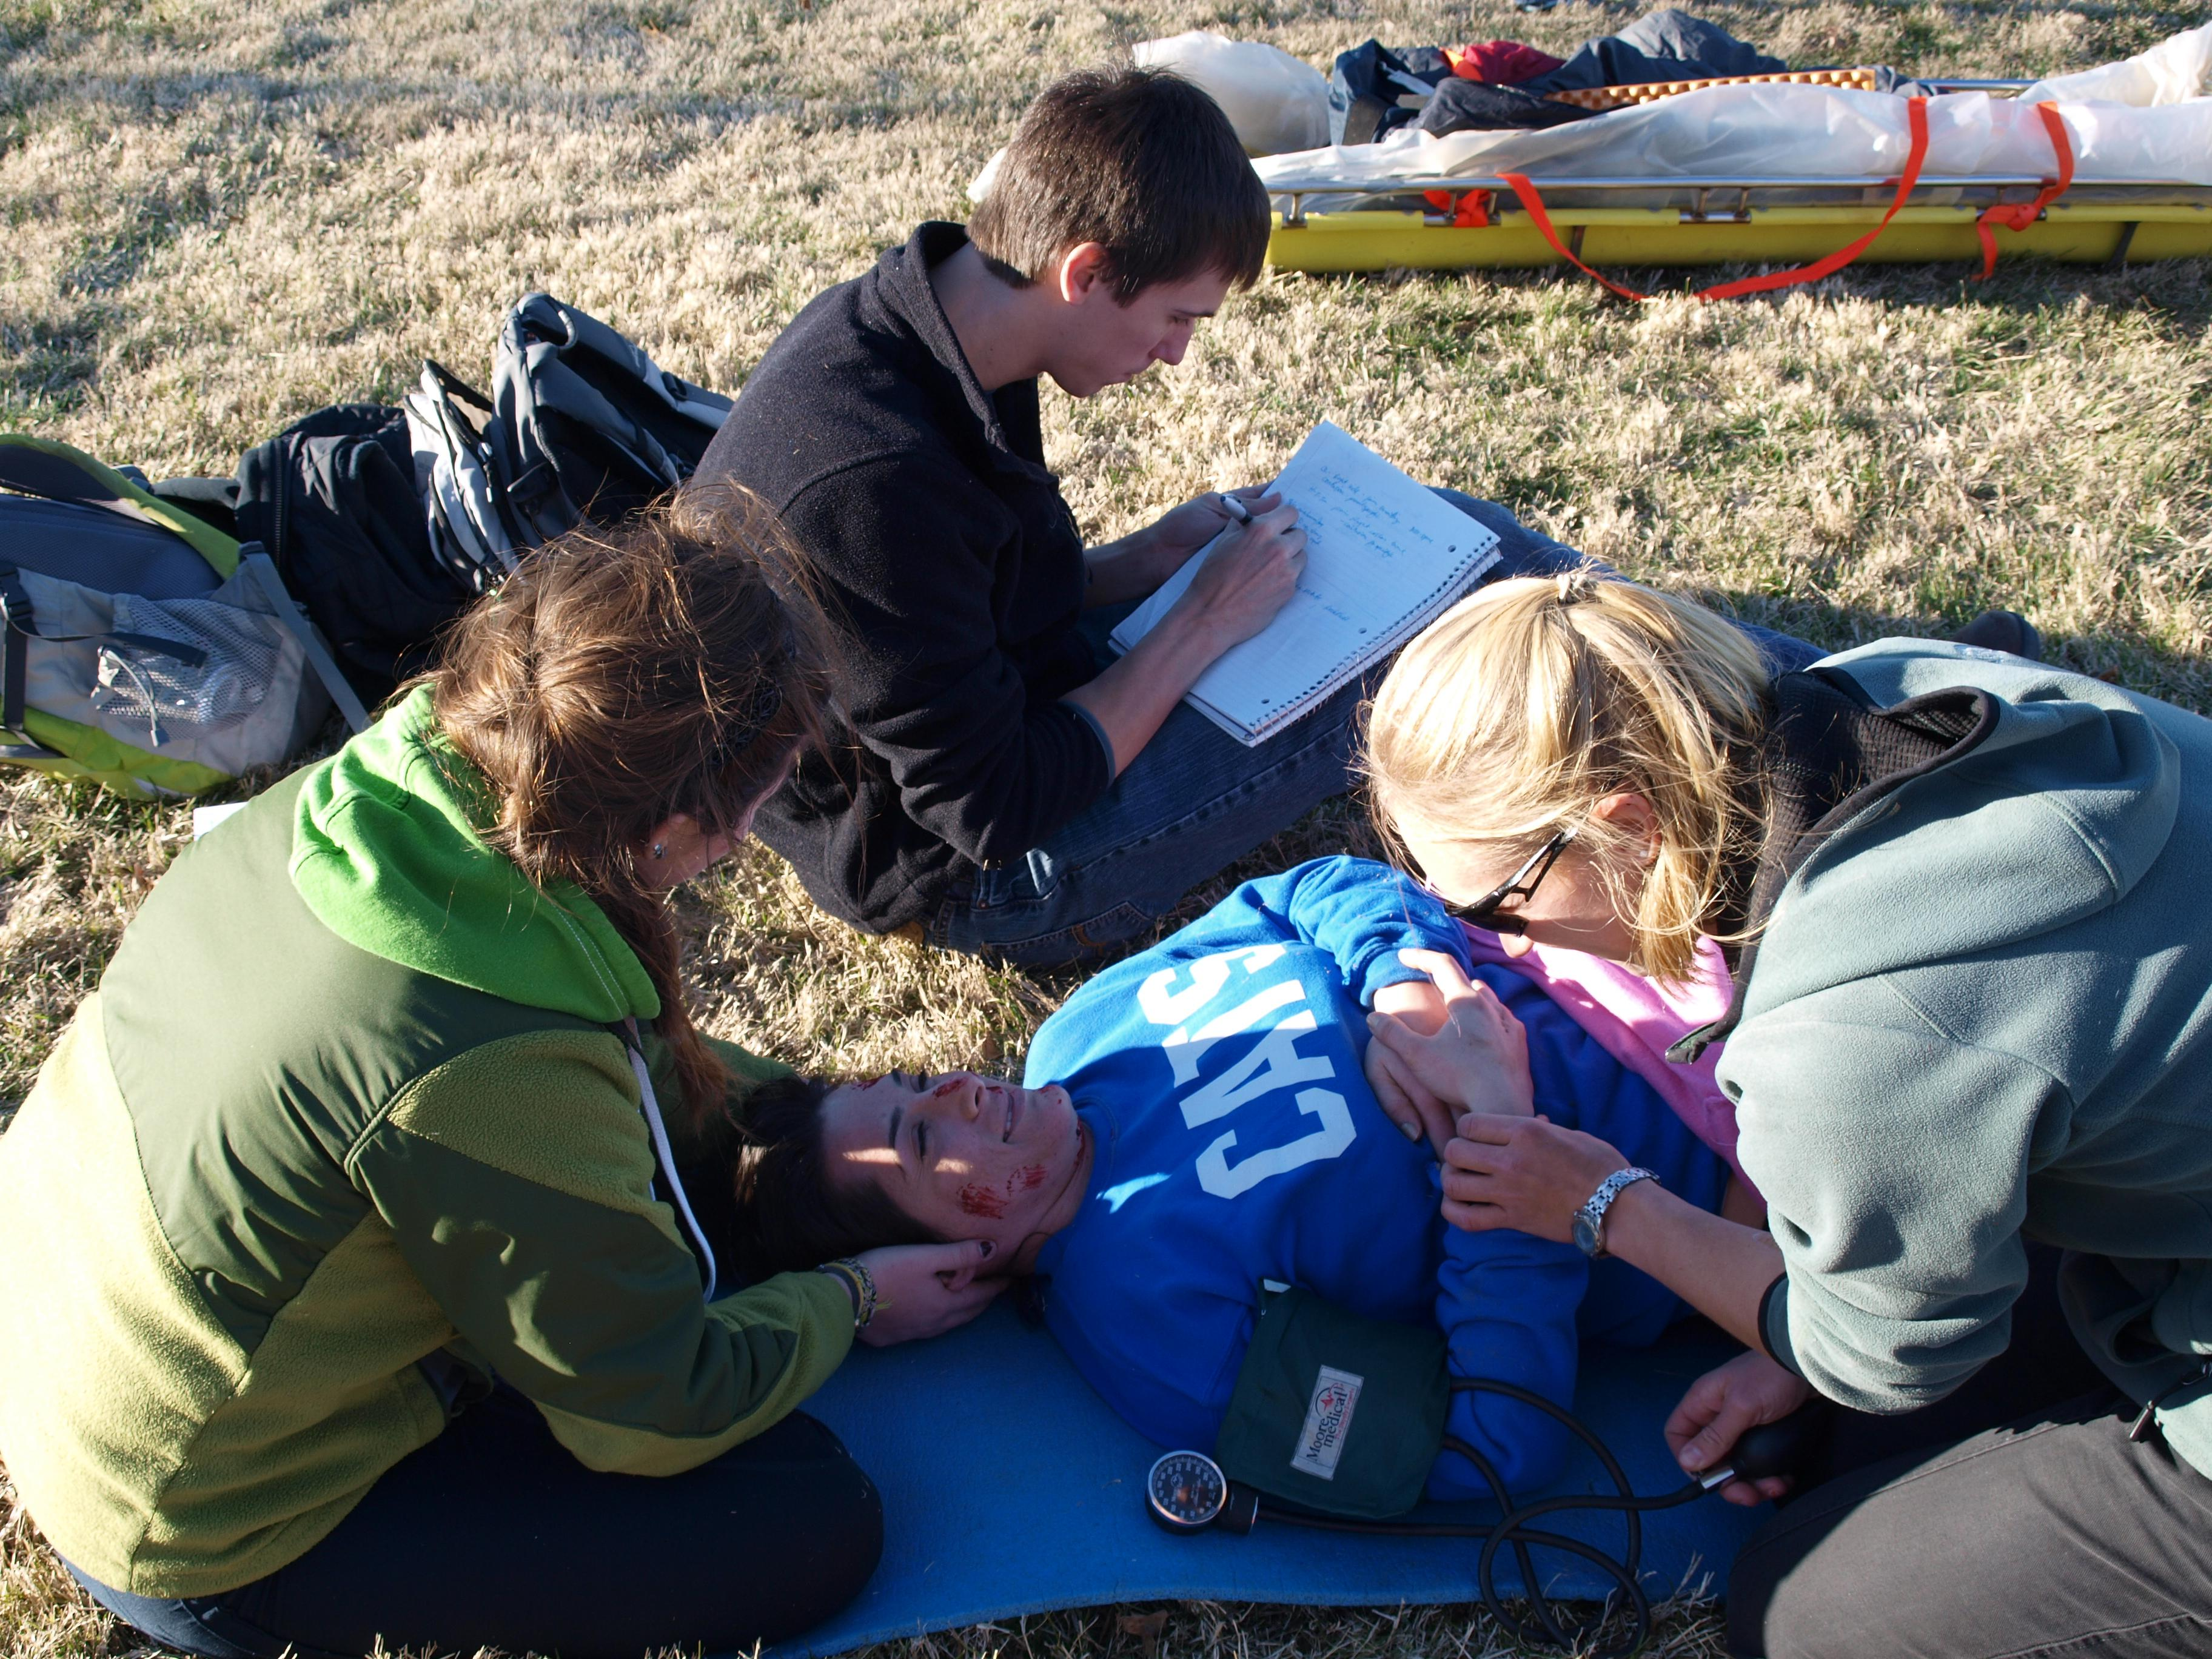 Wilderness First Responder Course To Be Offered In January